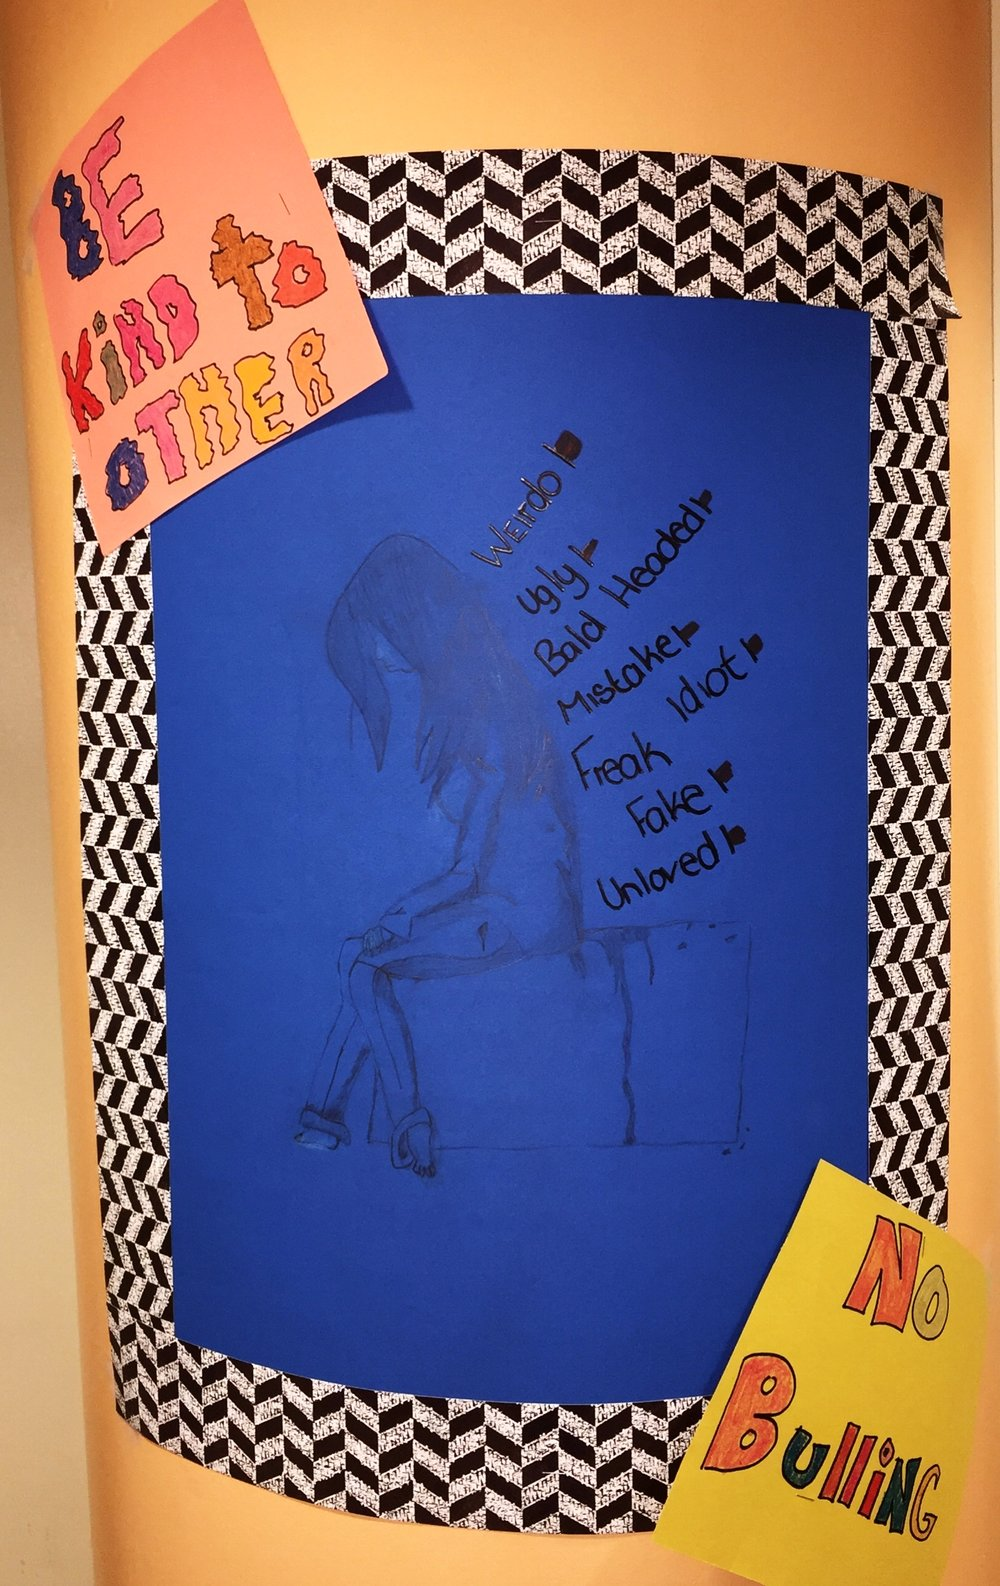 6th and 7th grade bullying prevention poster